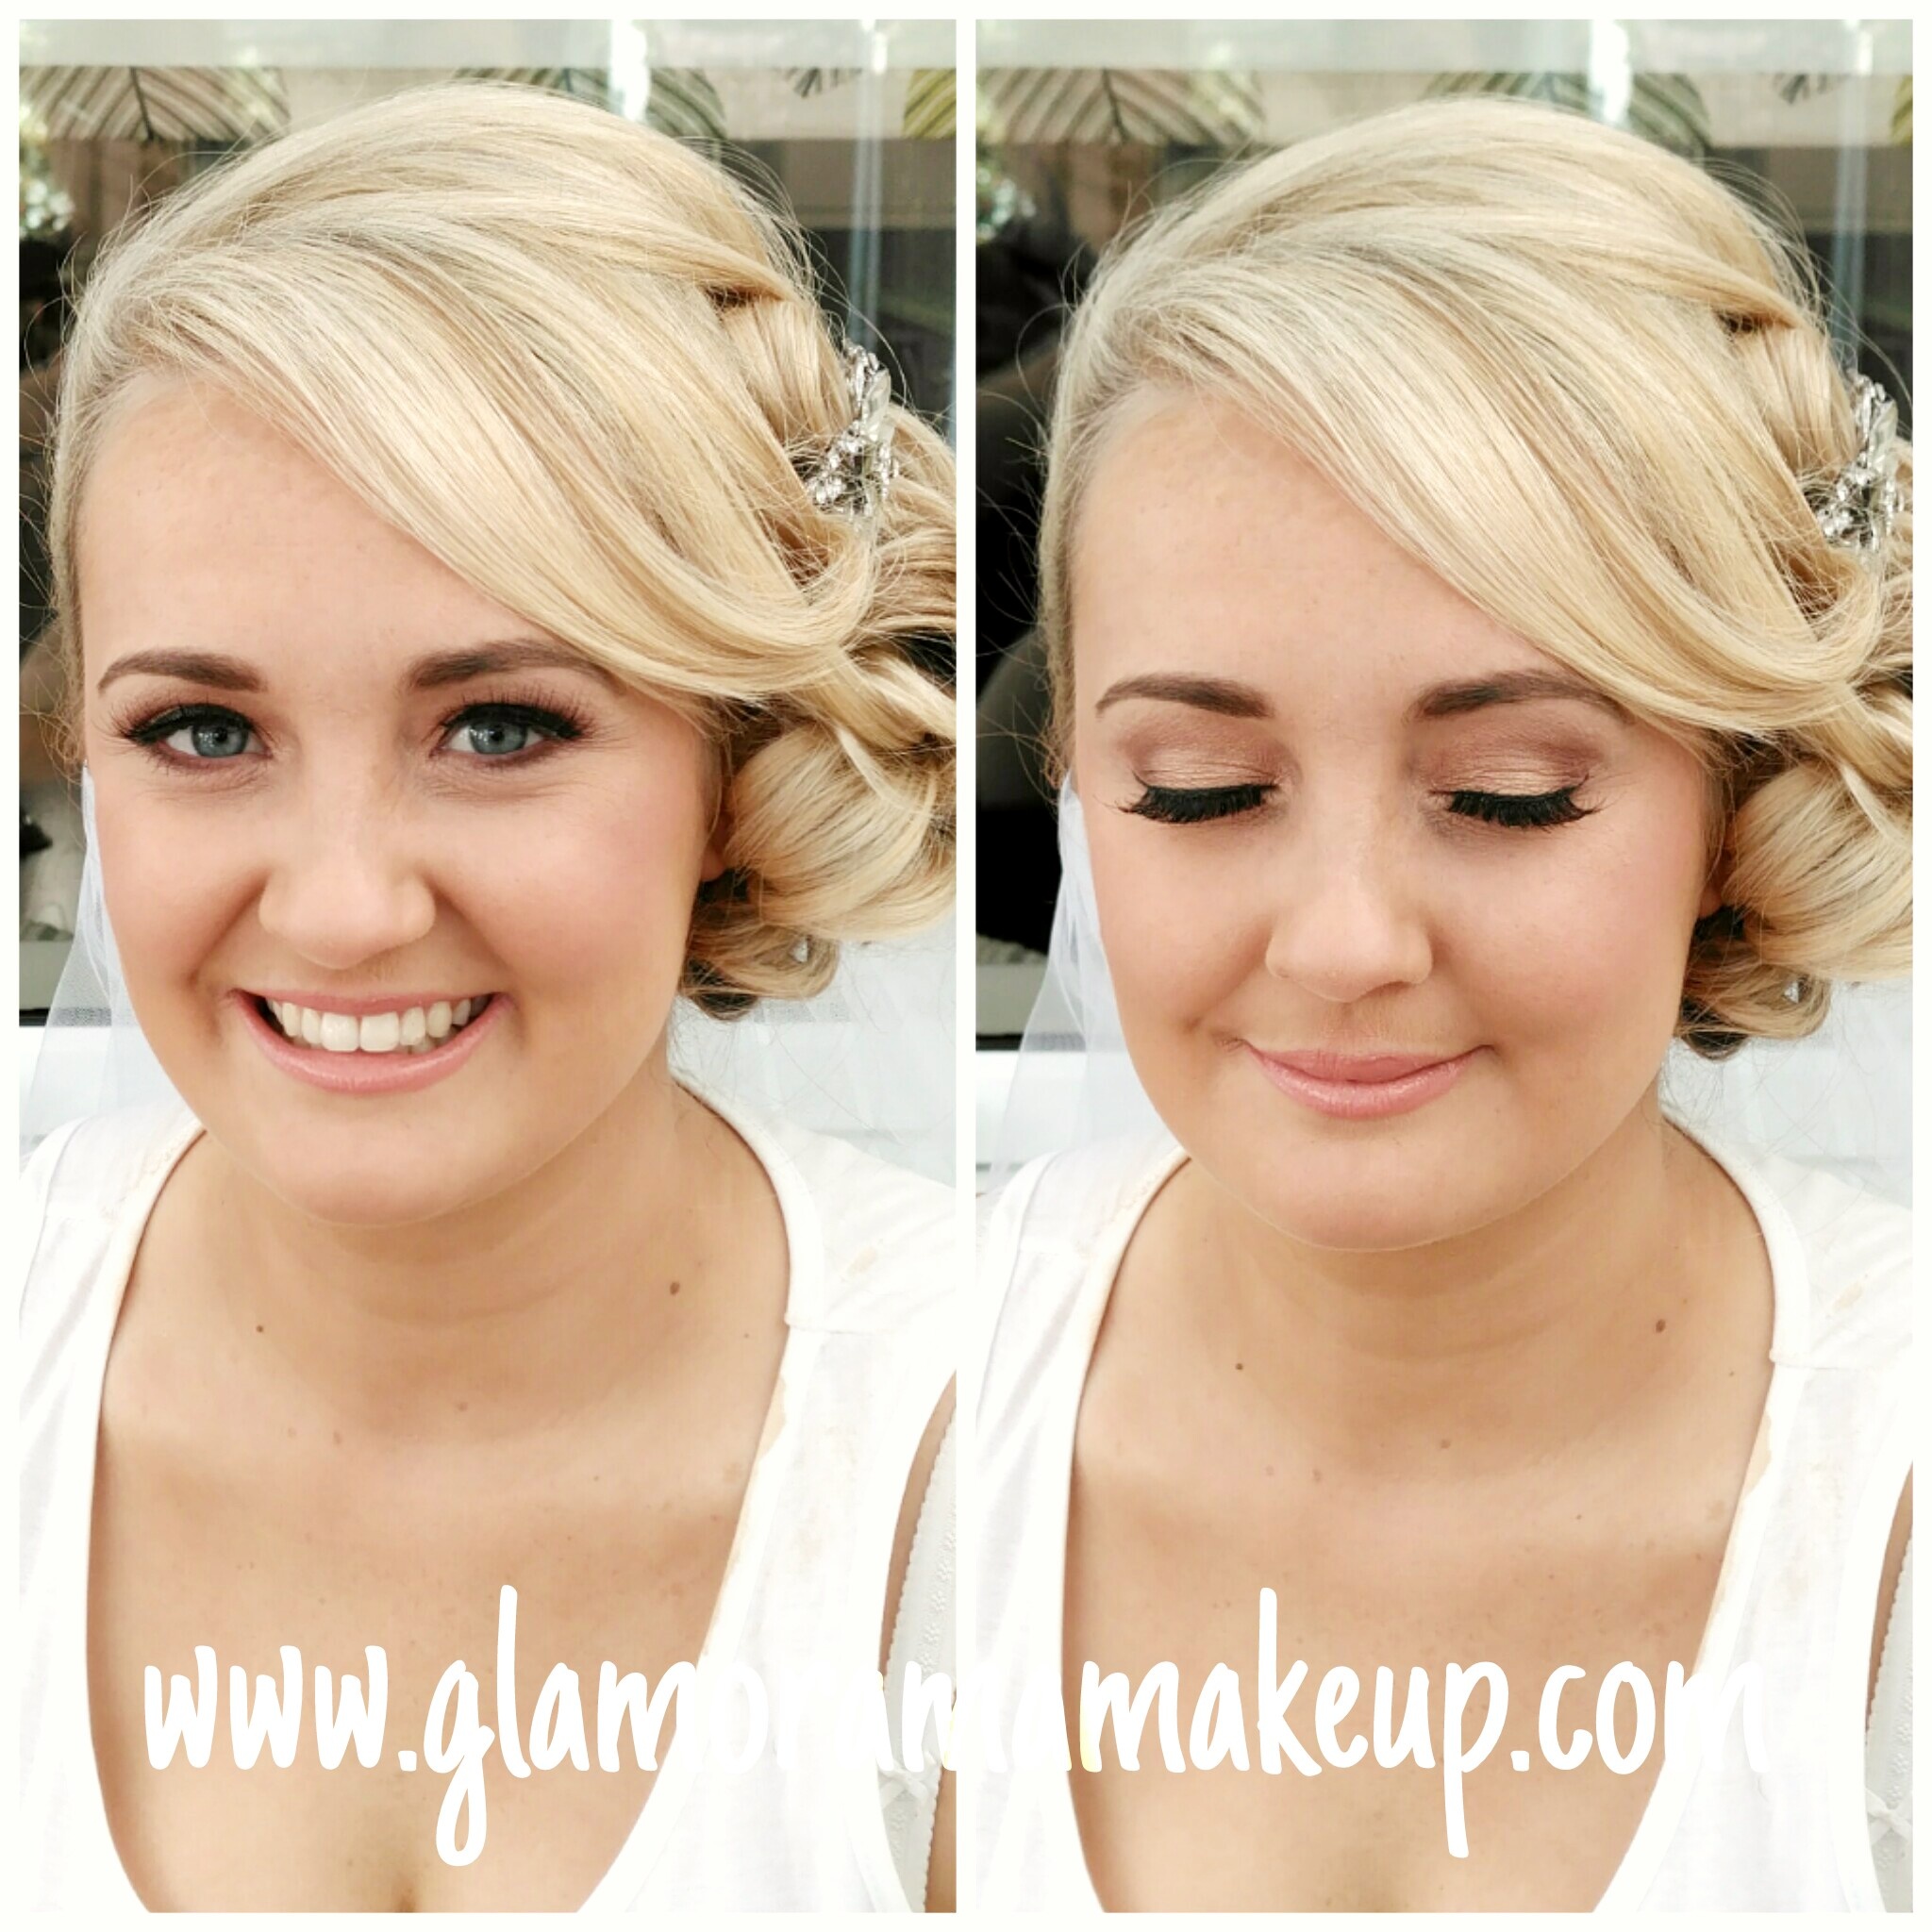 Glamorama Make up wedding lashes liverpool wedding blog